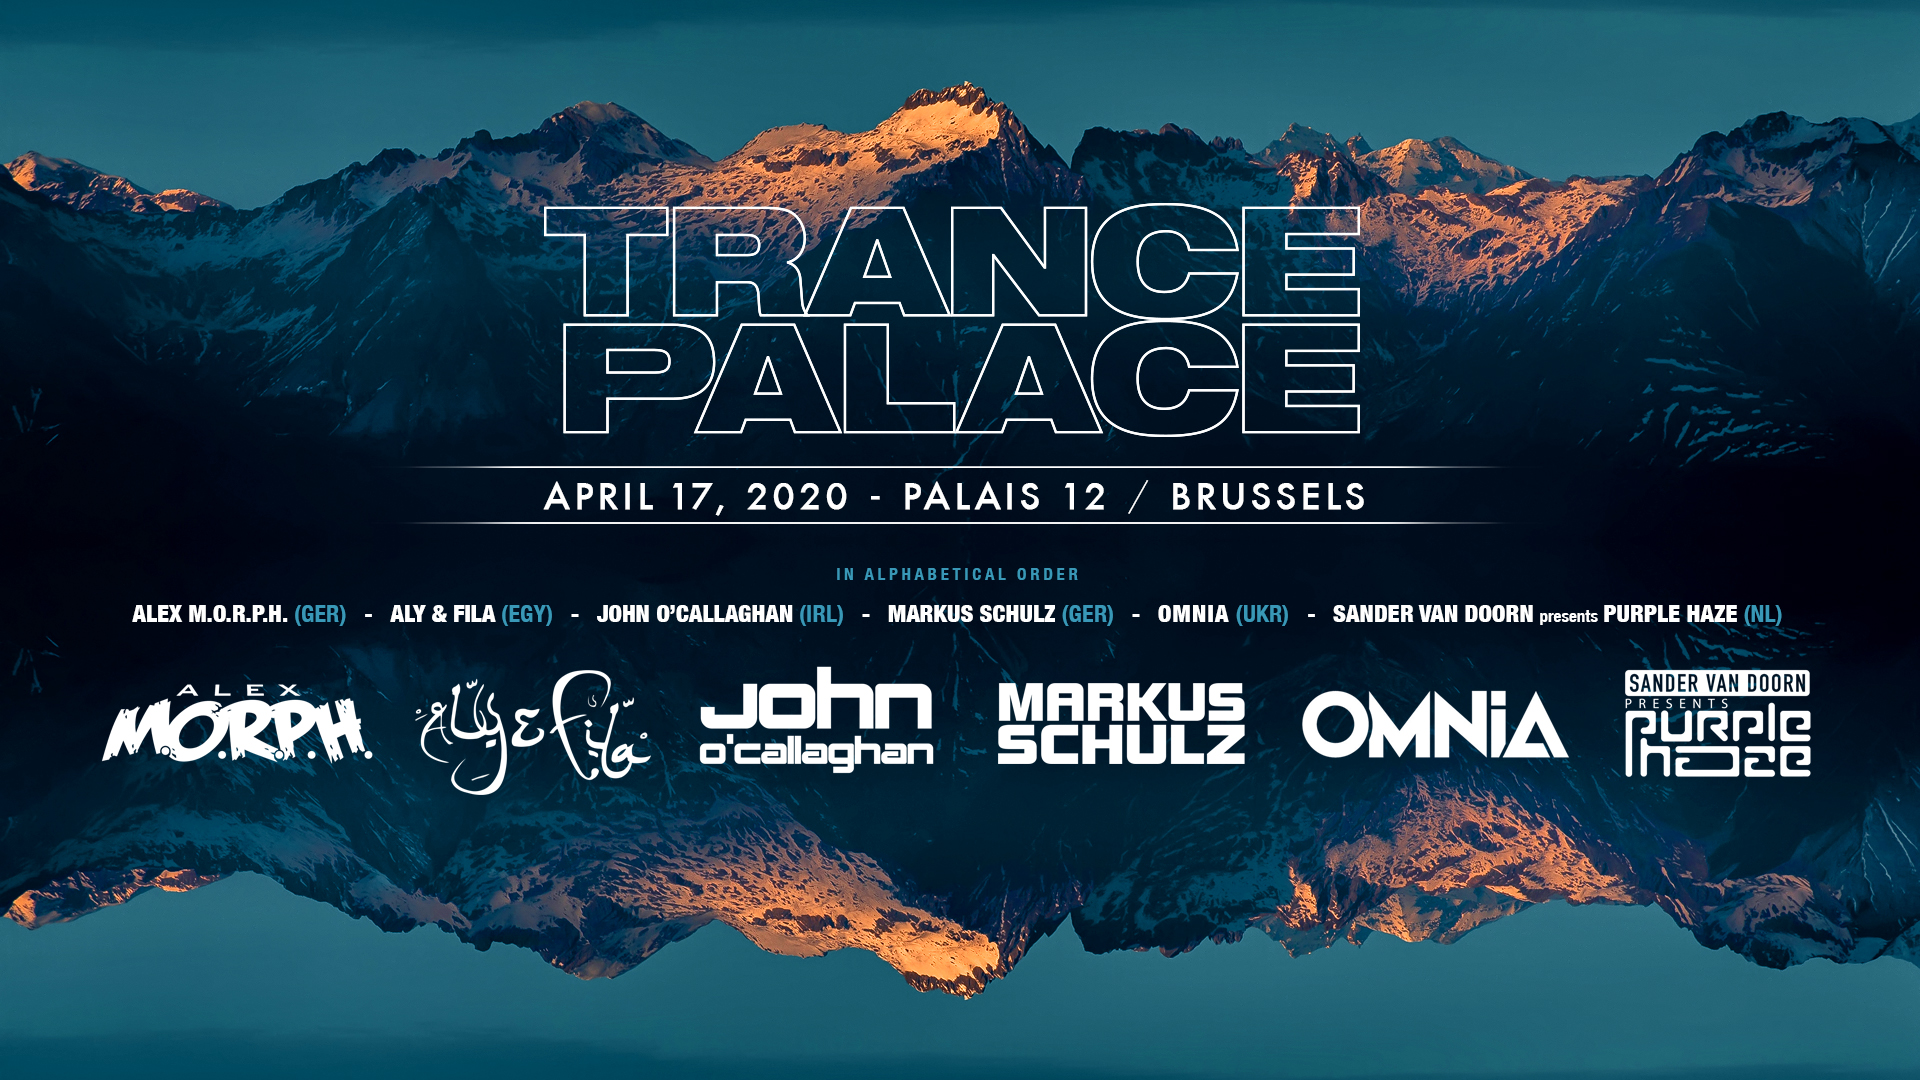 17.04.2020 Trance Palace, Brussels (BE)